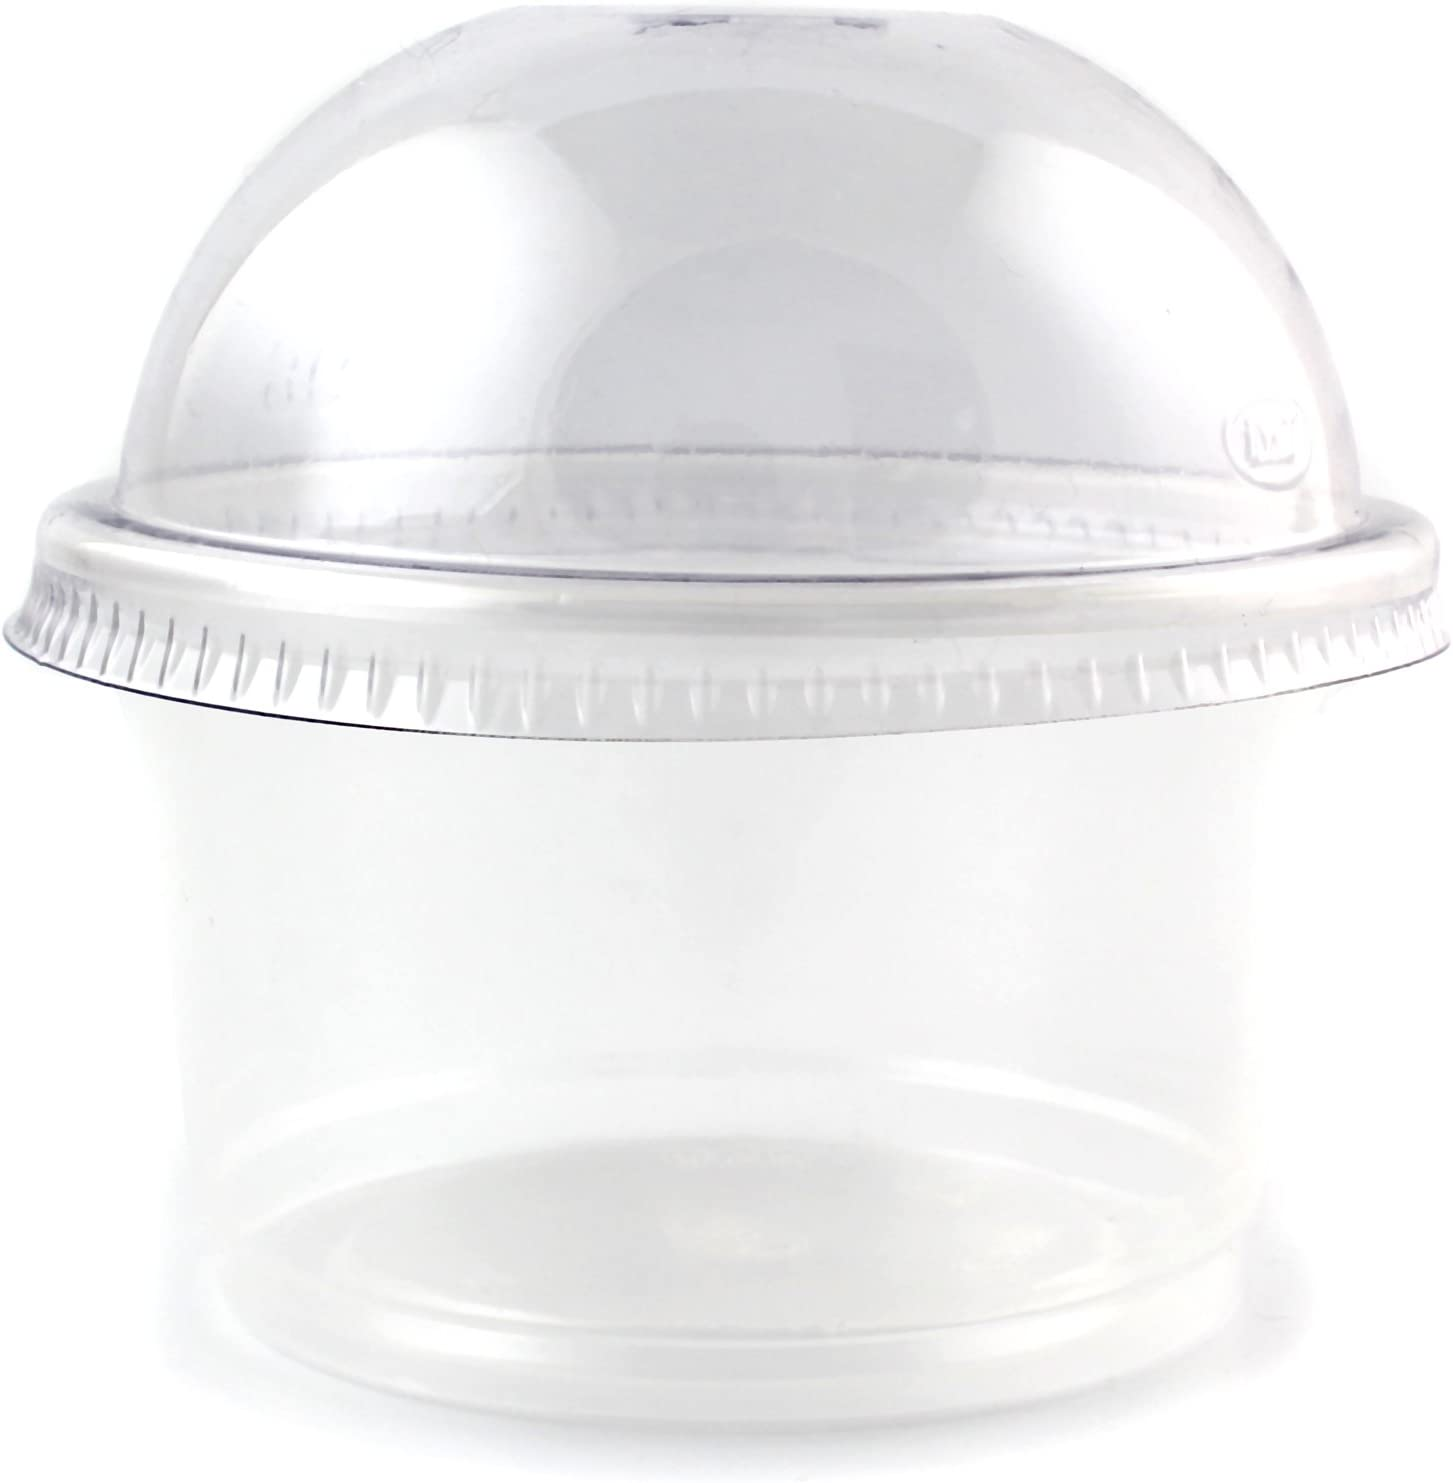 9oz Plastic Round List price Jello Shot Glasses Souffle D Cups Cash special price with Portion